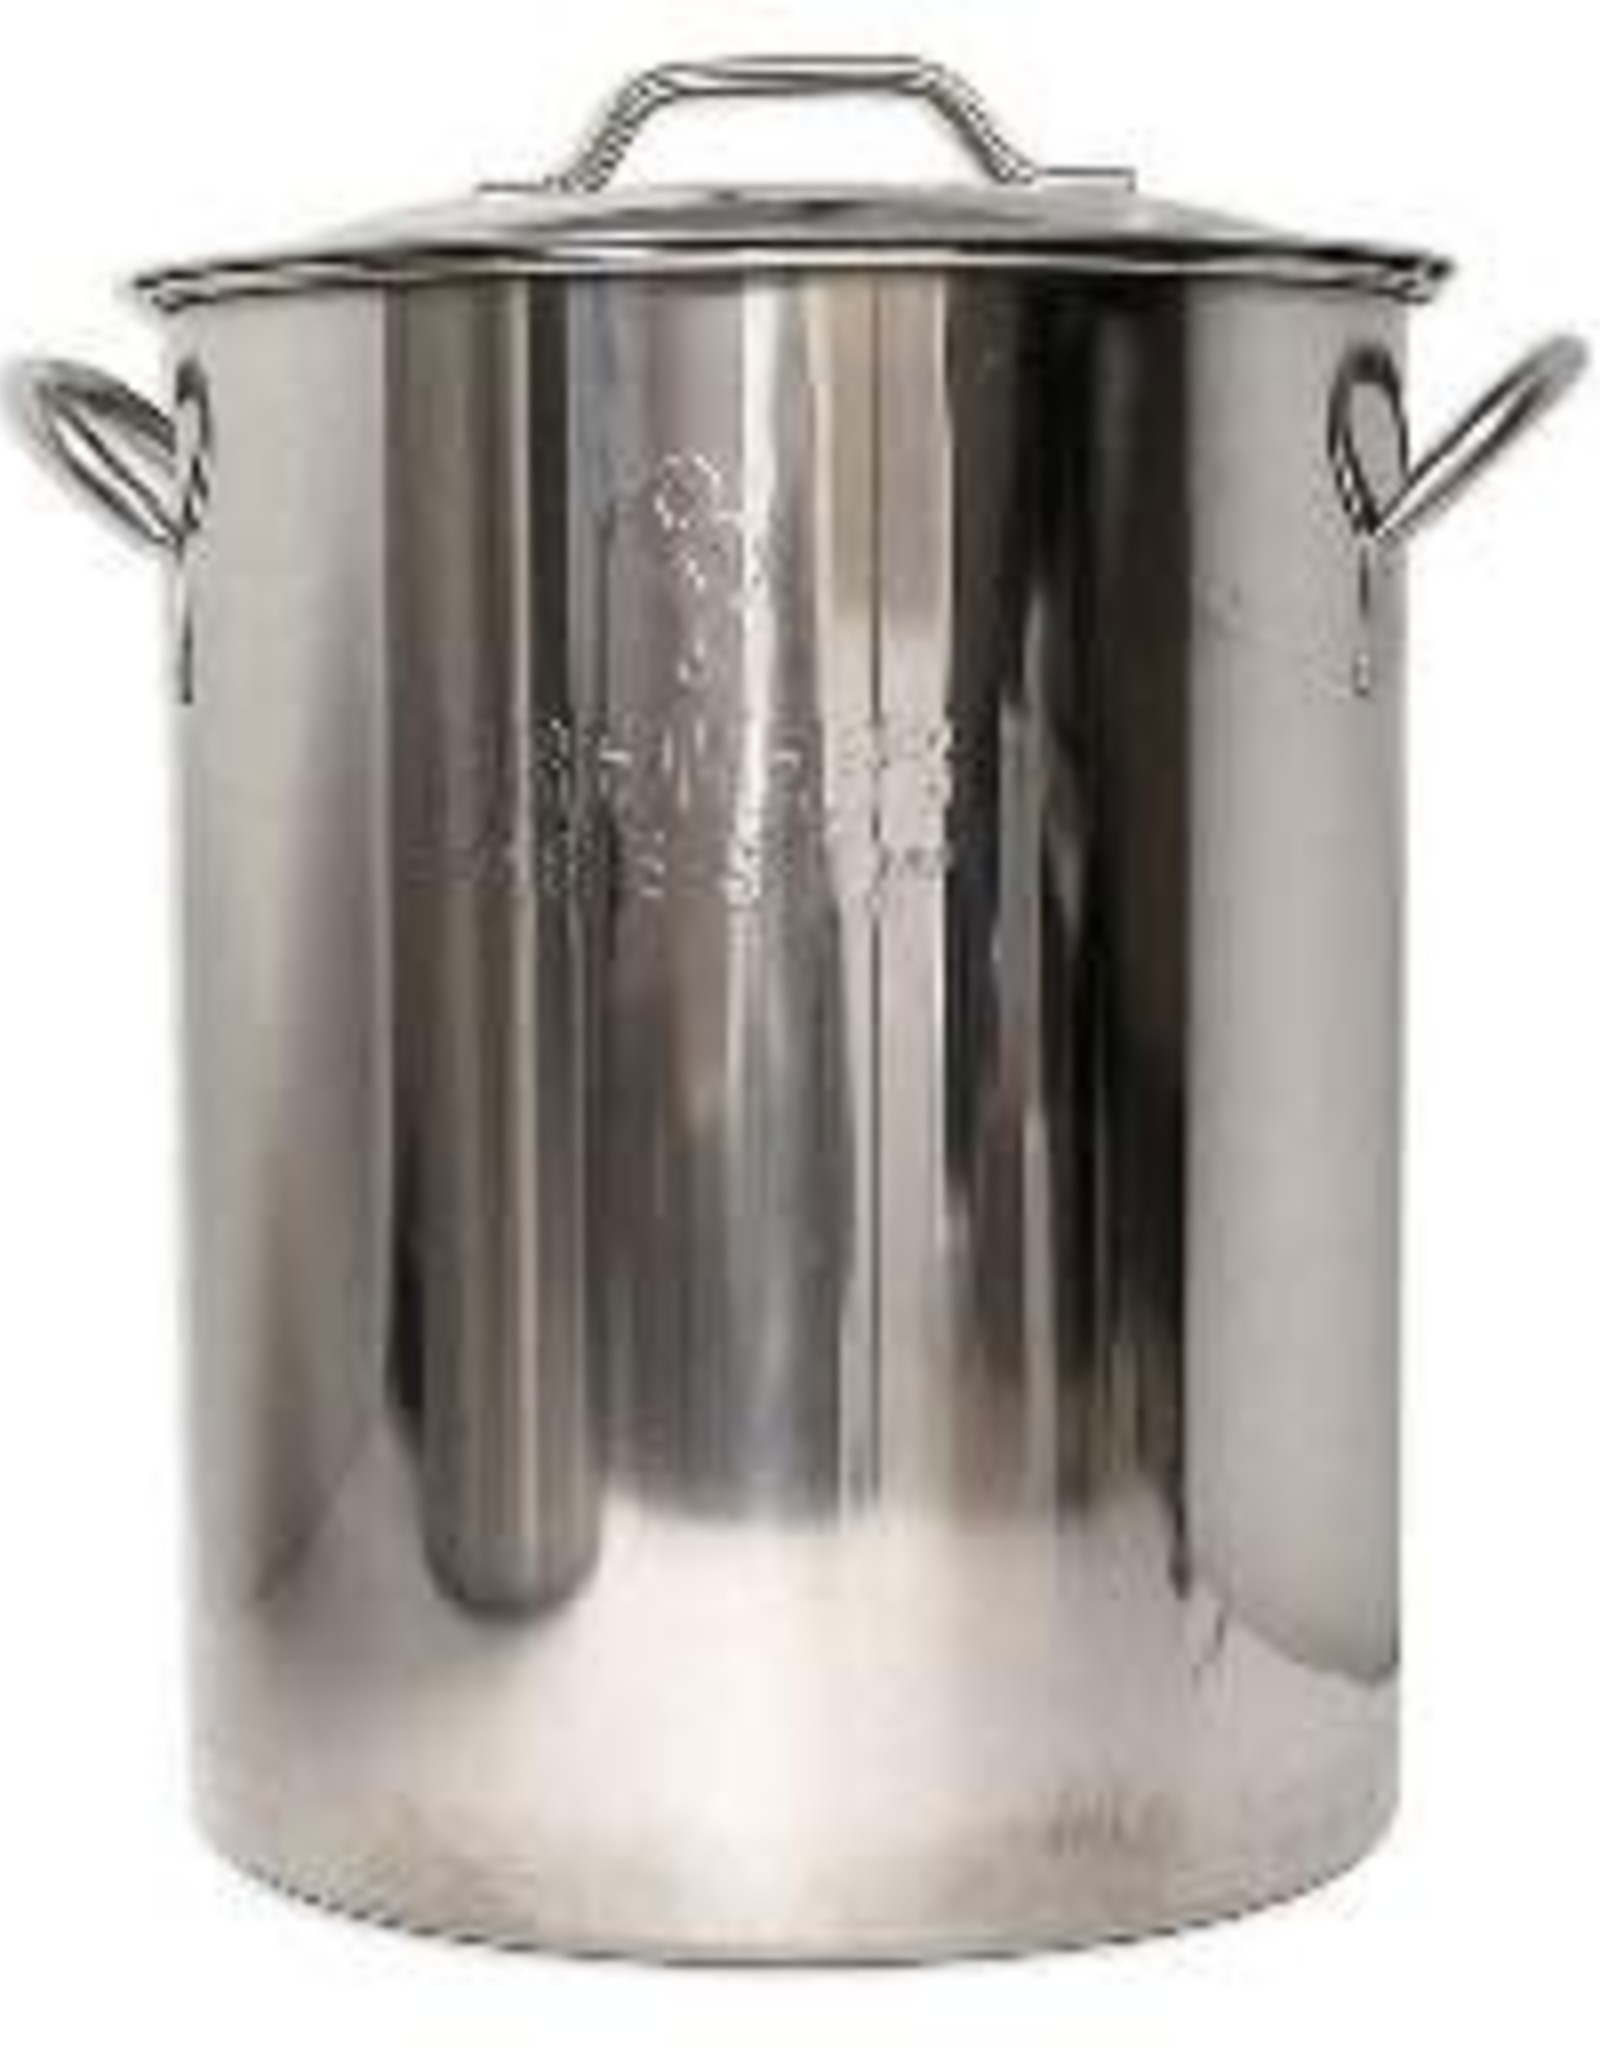 KETTLE- 16 GAL BASIC POT NO PORTS